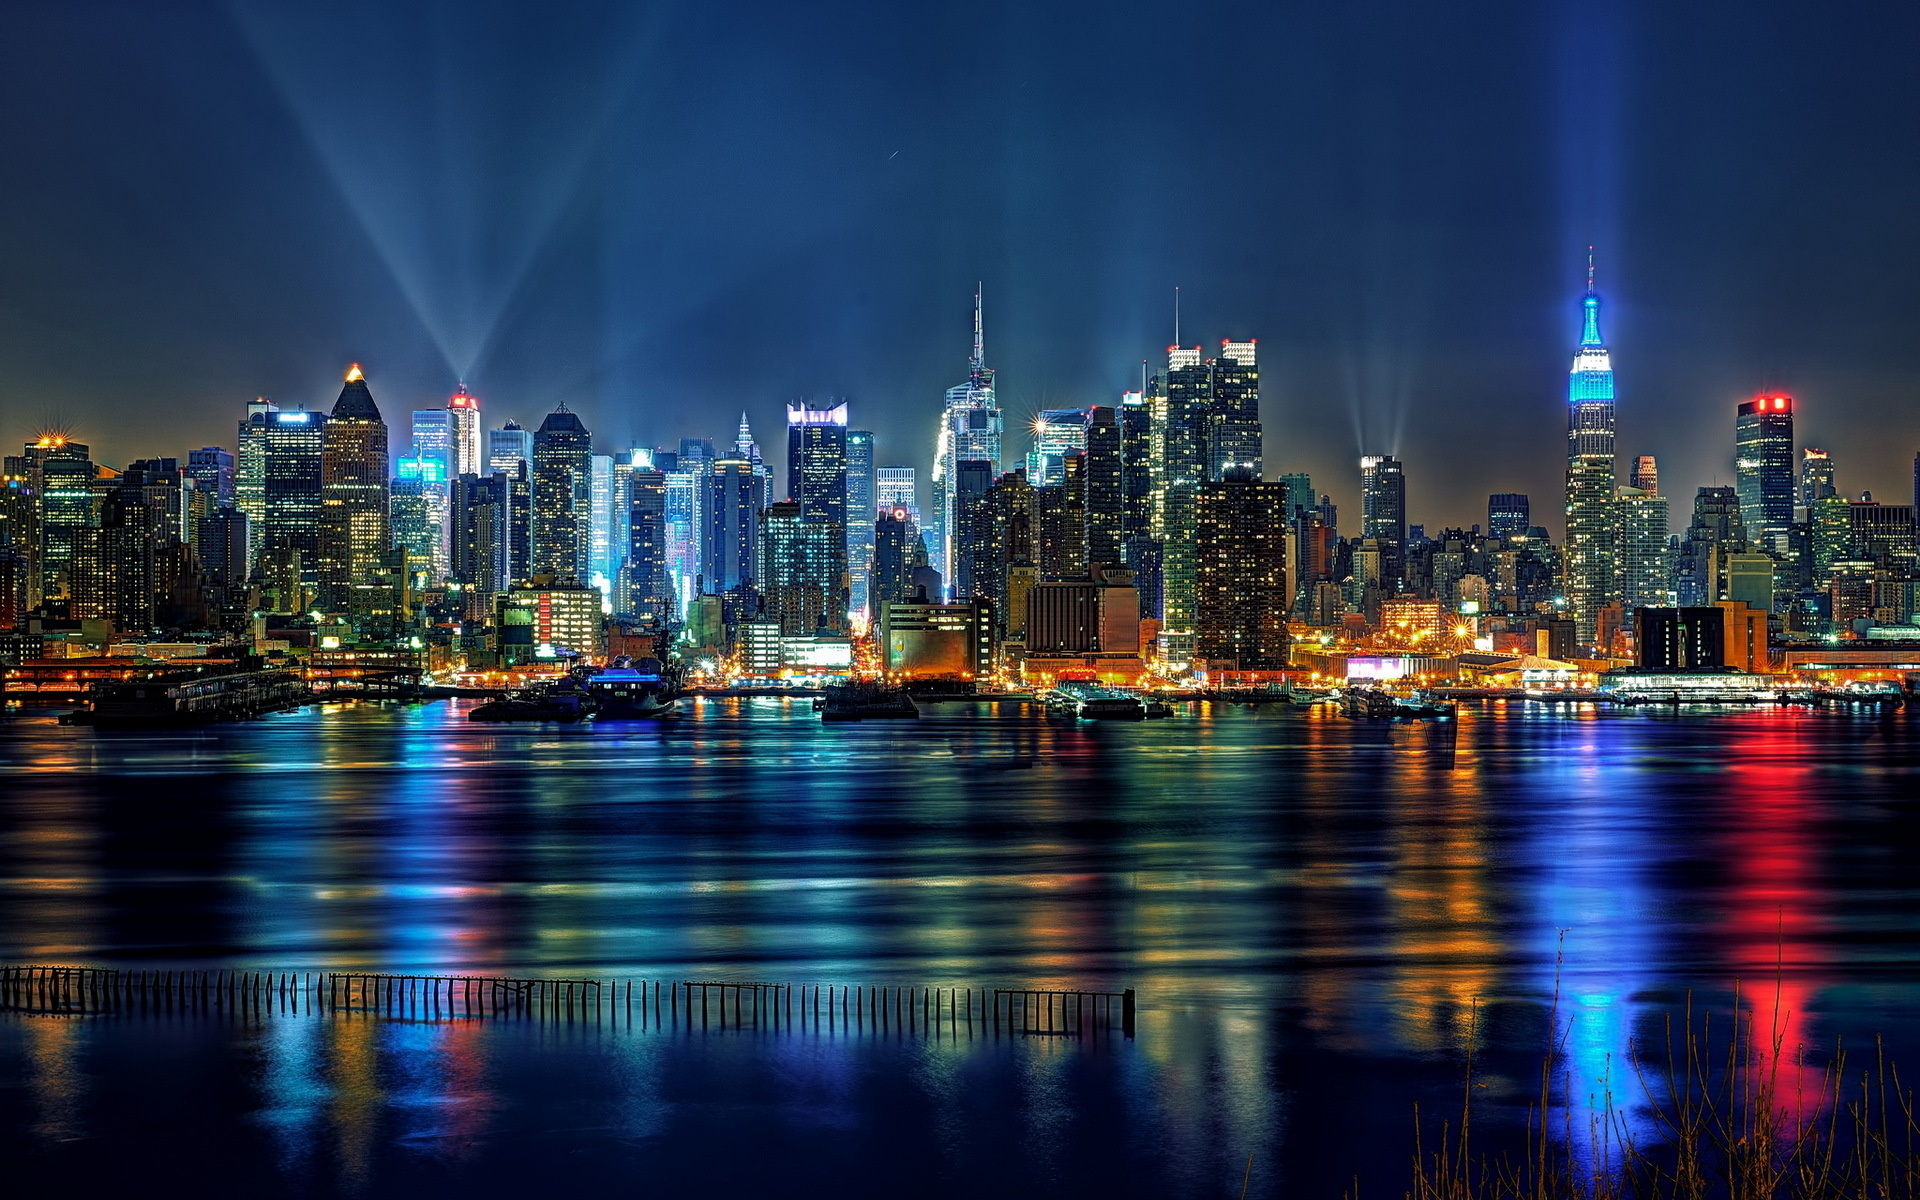 Popular Screensavers And Wallpaper 47 Images: [47+] New York Screensaver And Wallpaper On WallpaperSafari